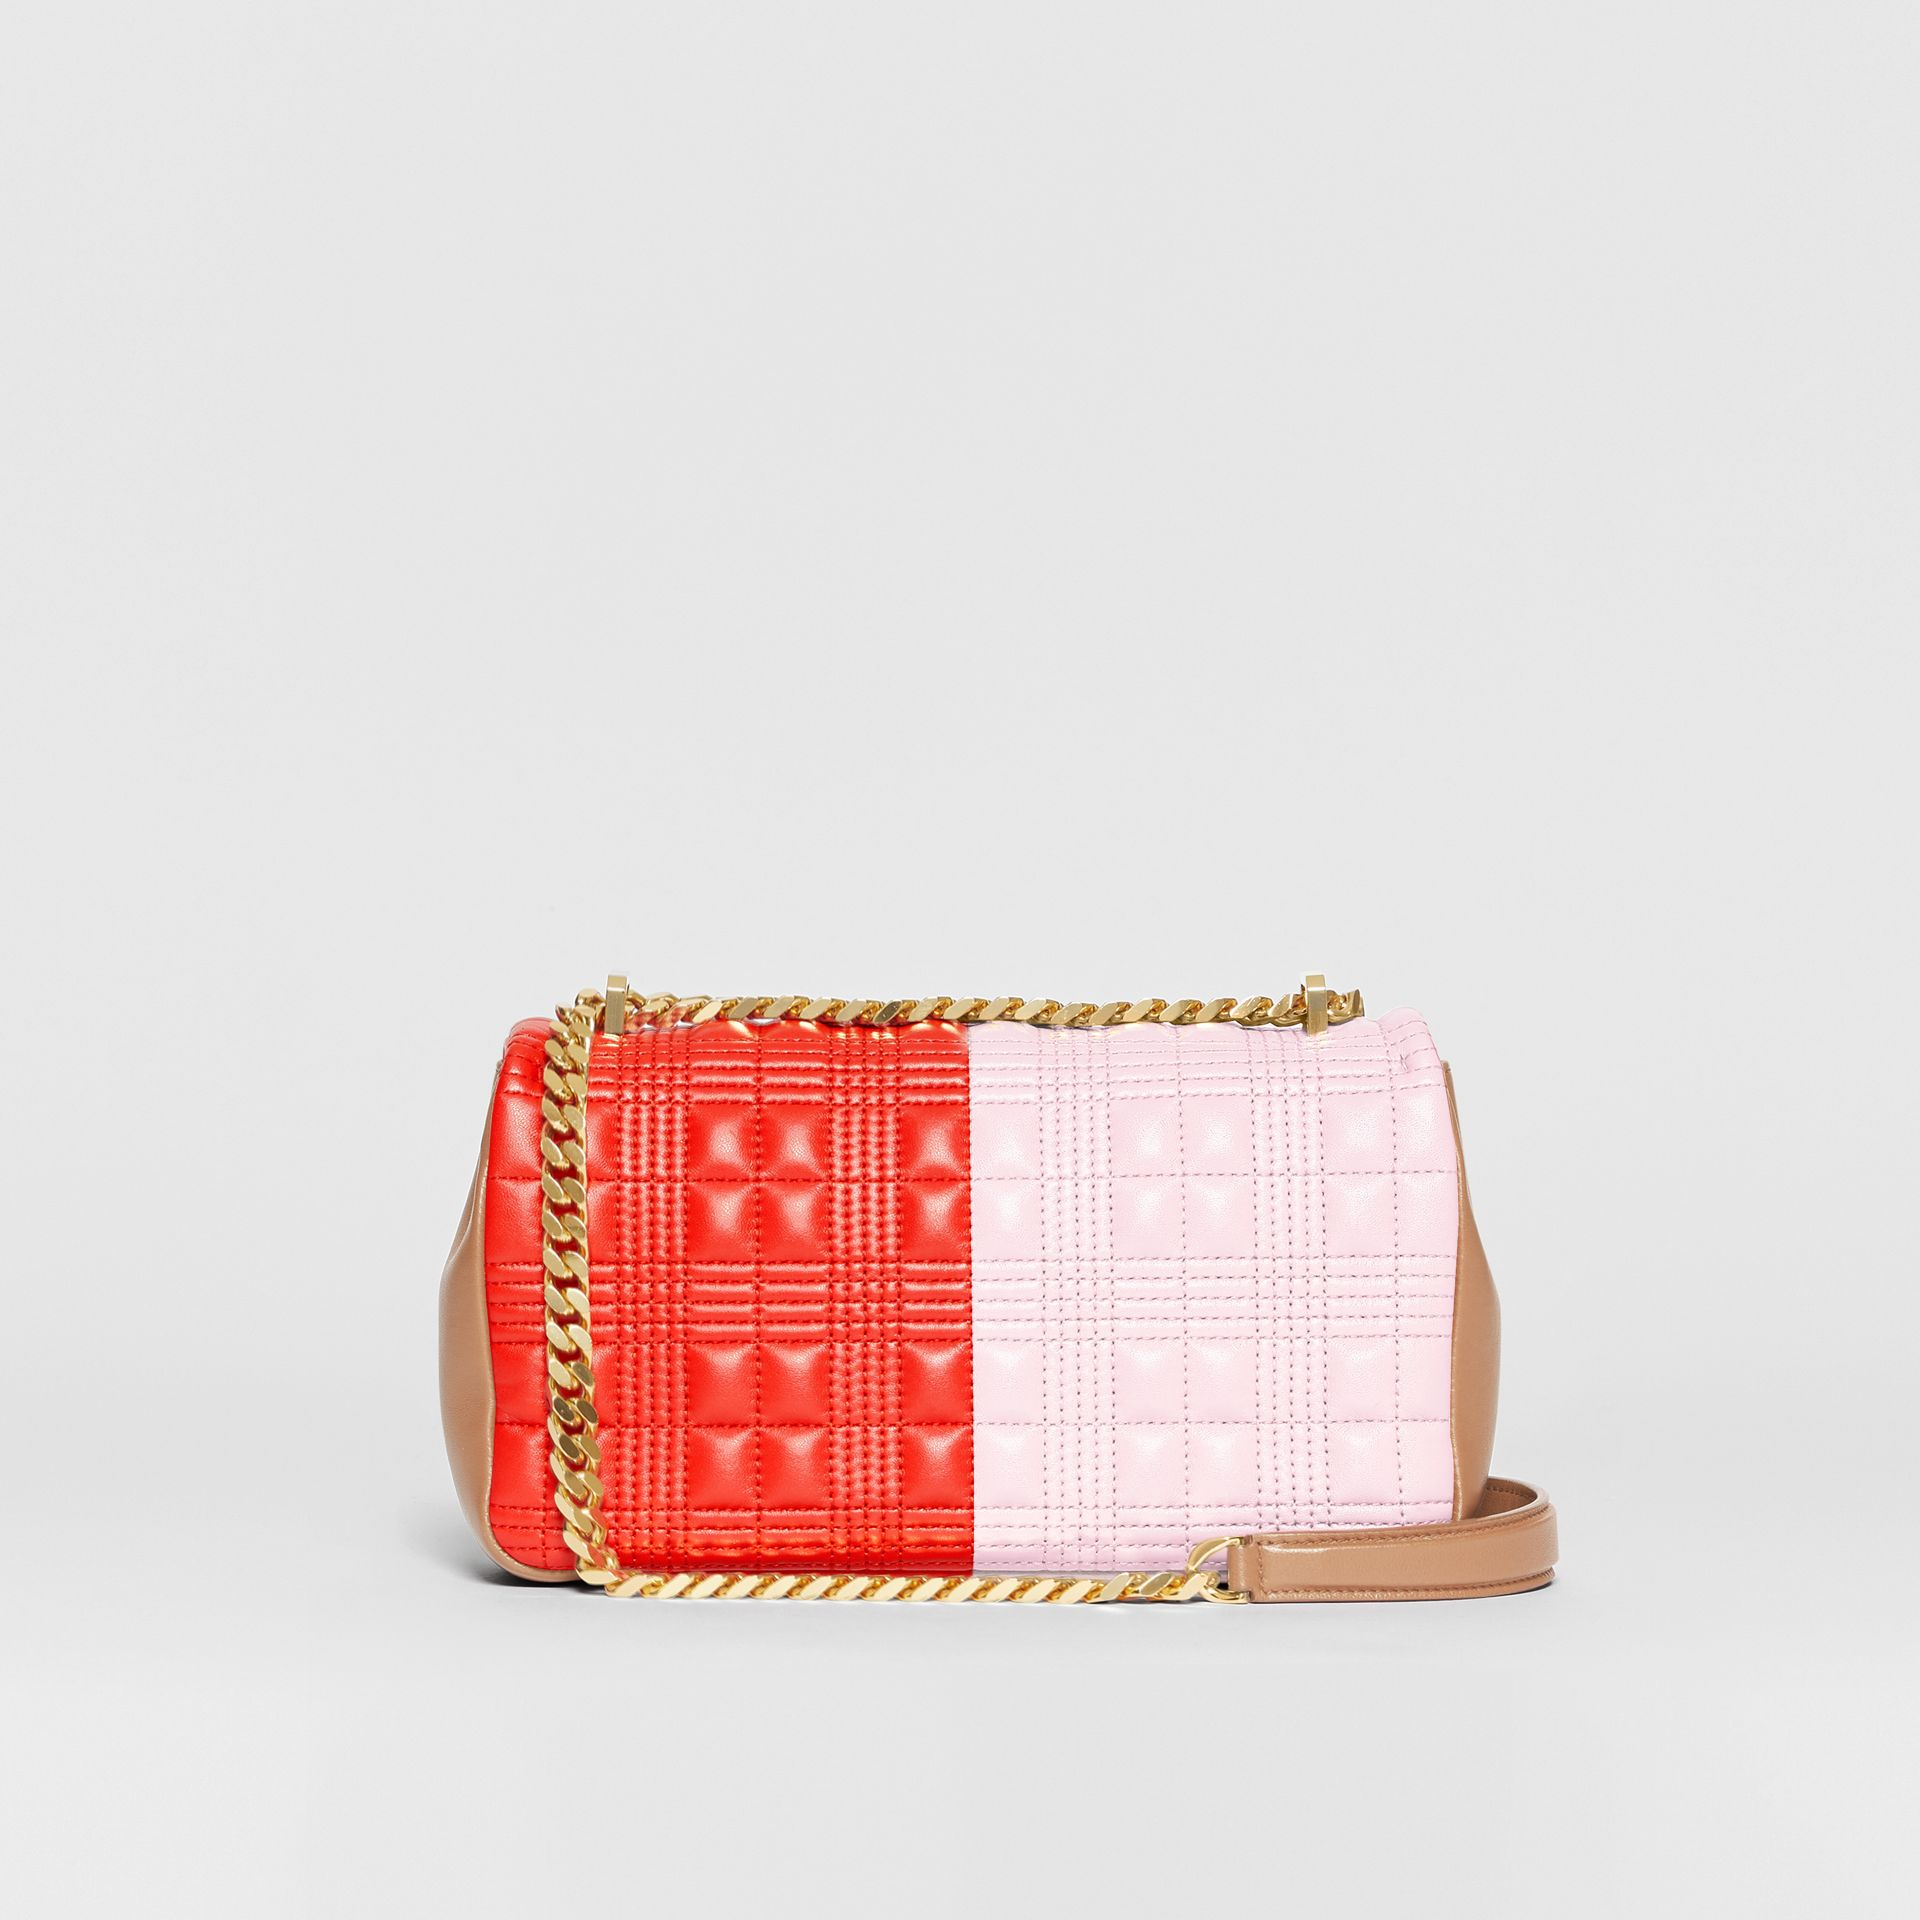 Small Quilted Tri-tone Lambskin Lola Bag in Red/pink/camel - Women | Burberry - gallery image 5